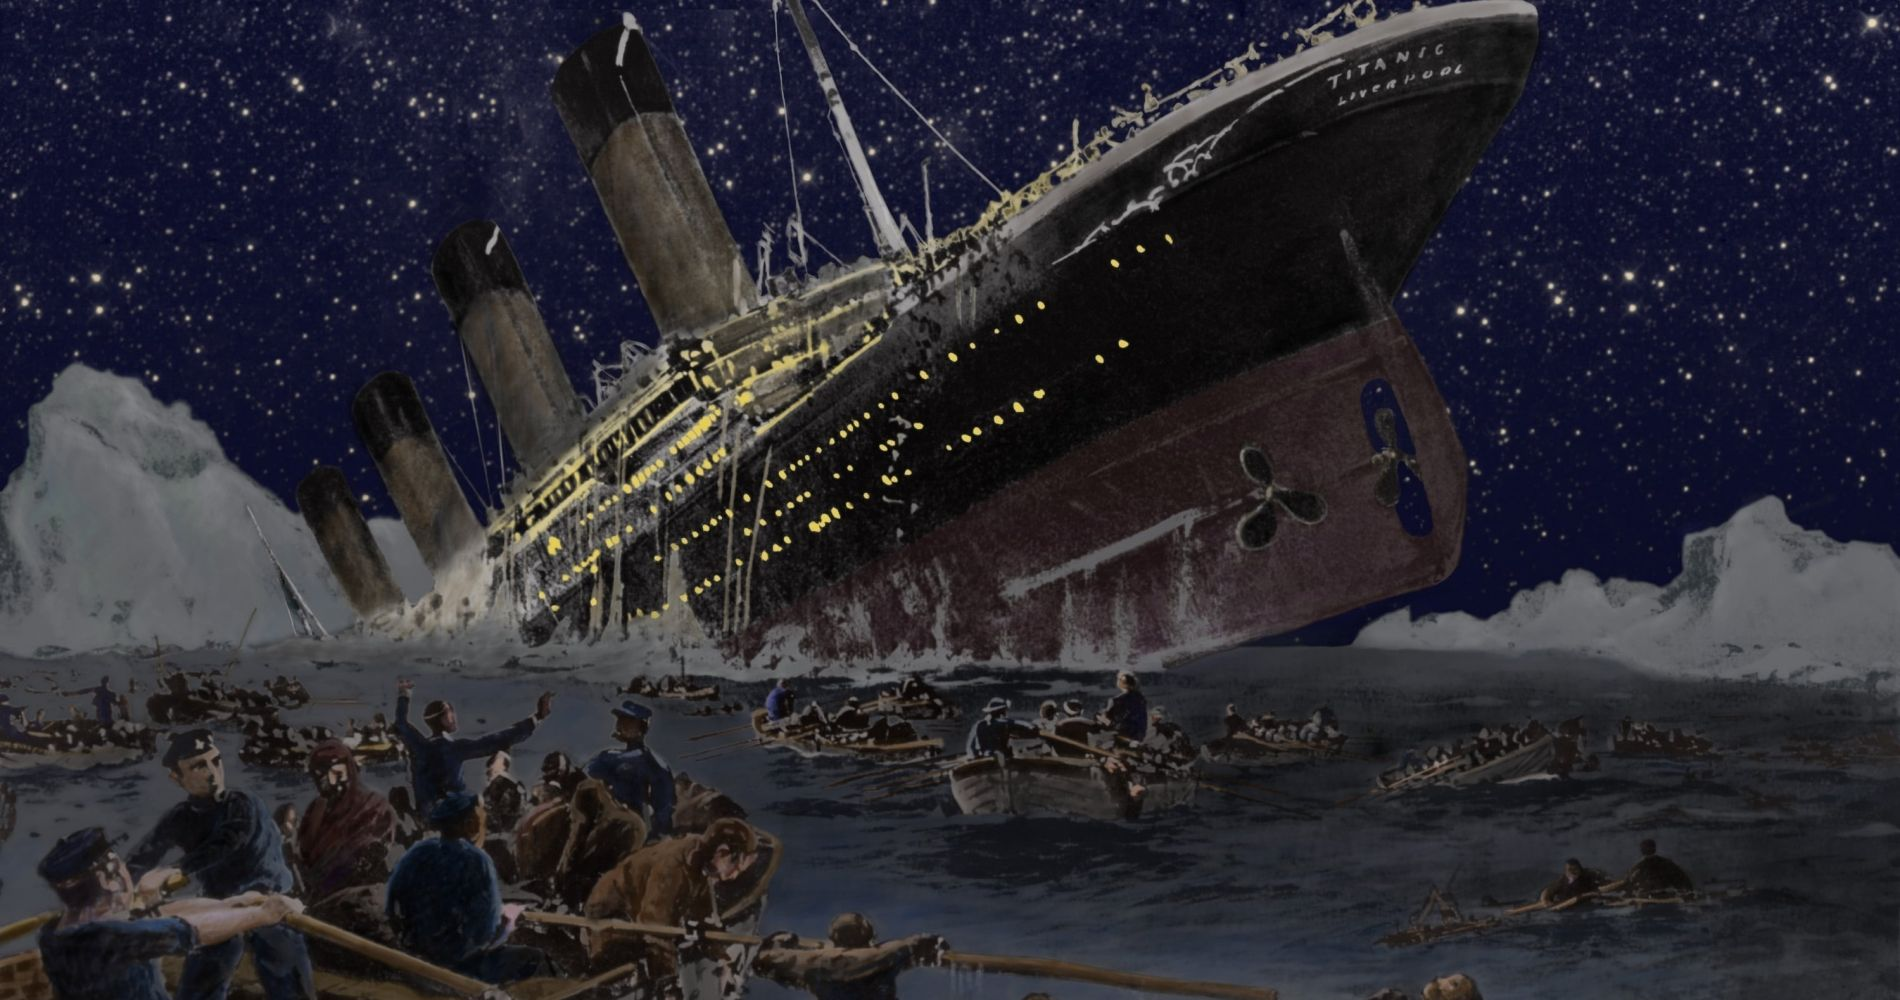 Best Exhibitions in Las Vegas including TITANIC: The Artifact